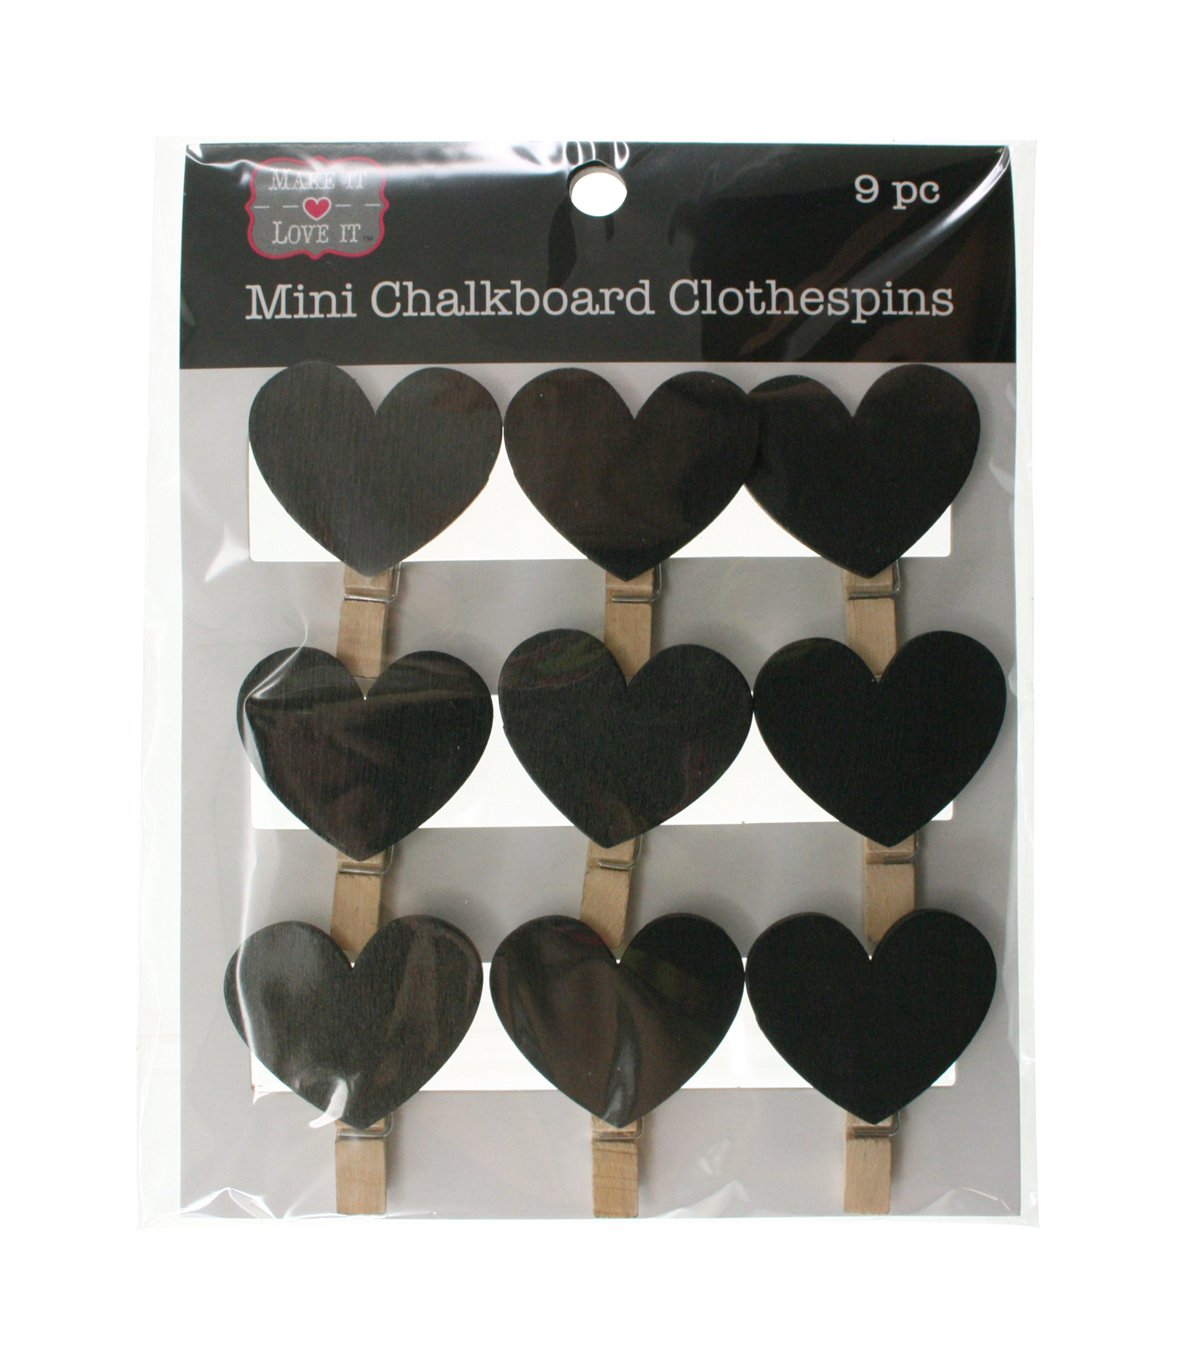 Make It Love It Chalkboard Clothespins Hearts